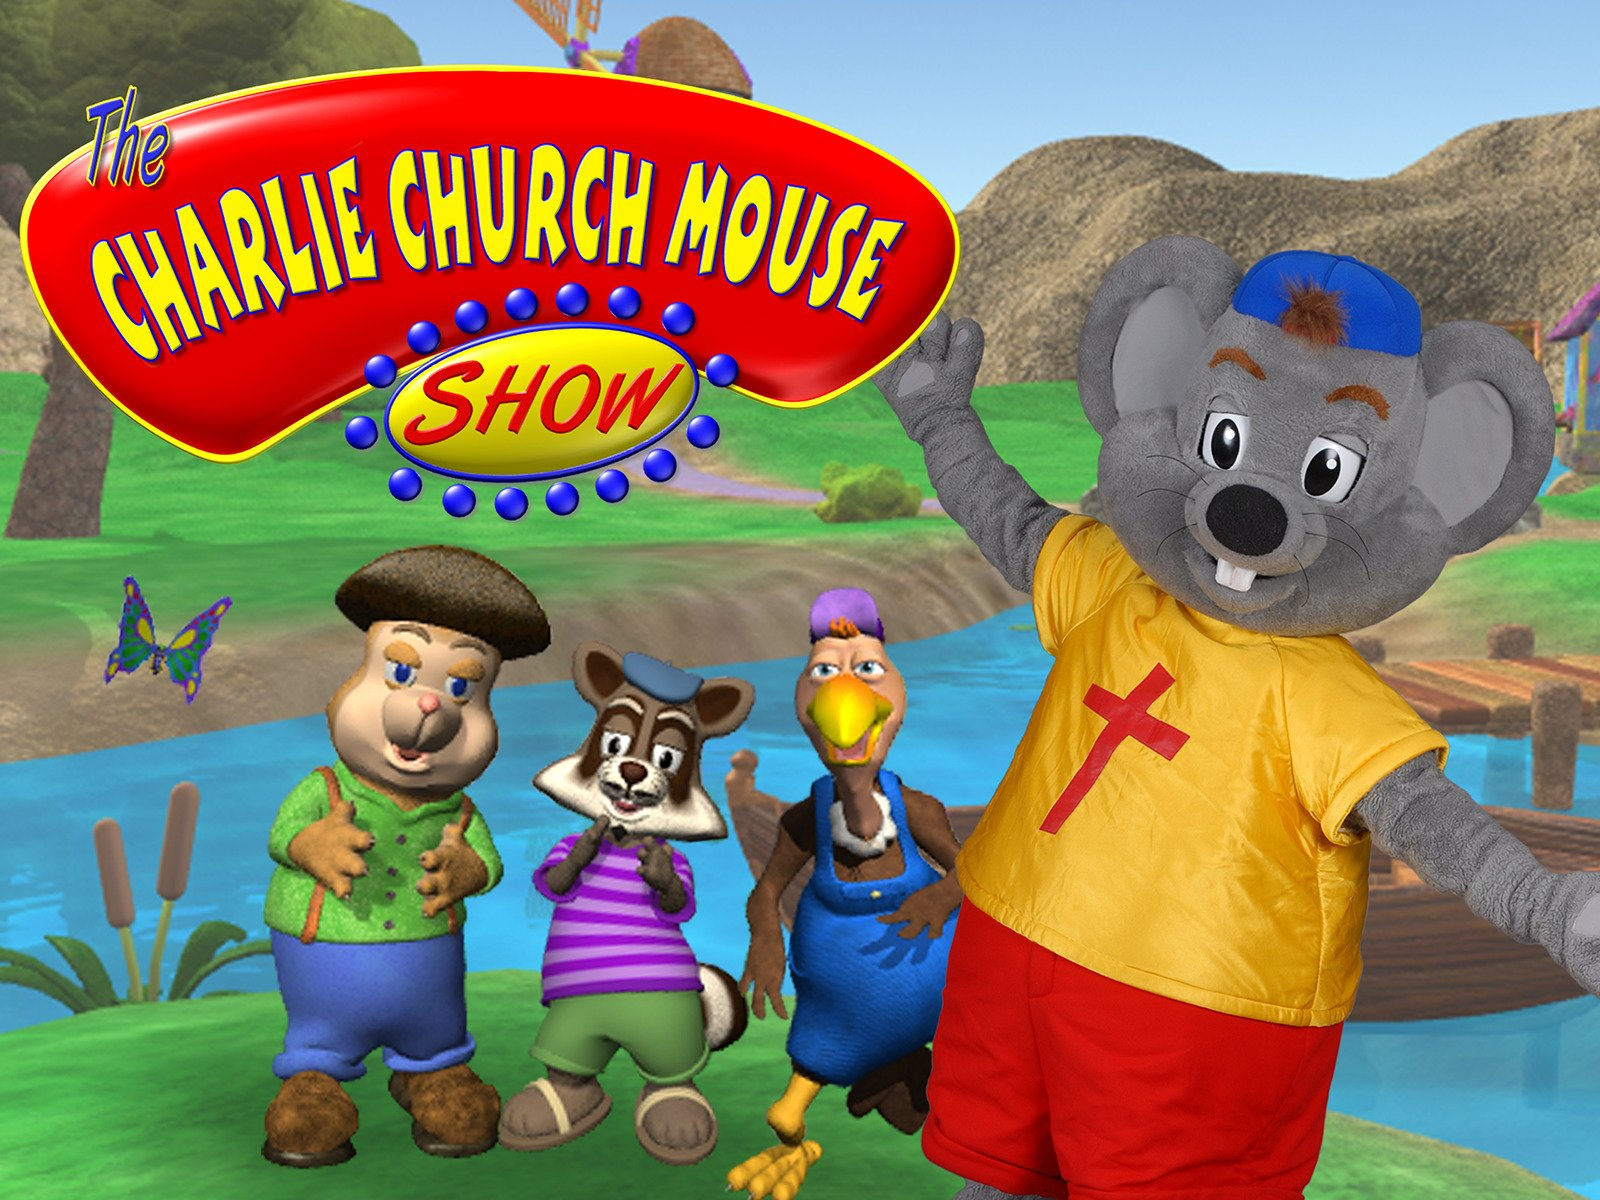 The Charlie Church Mouse Show